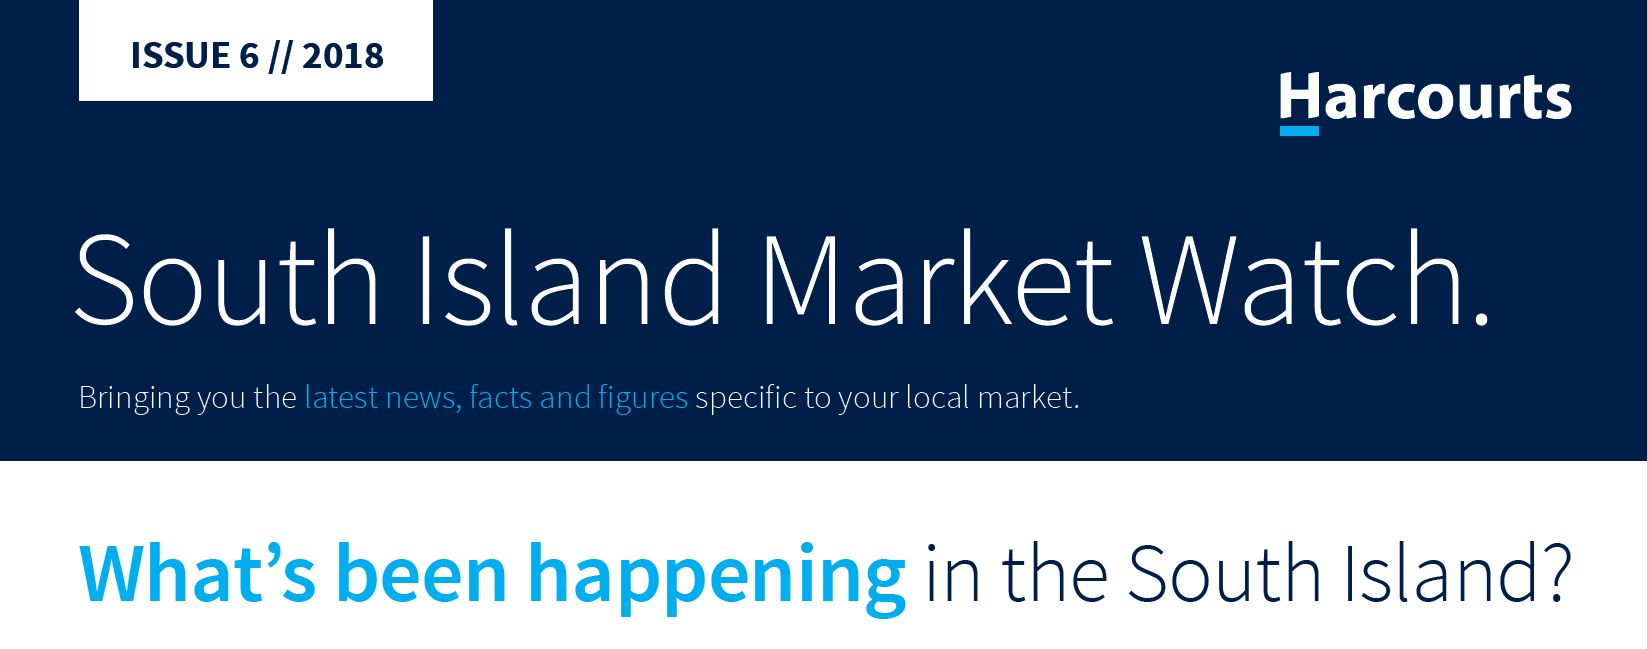 South Island Market Watch July 2018